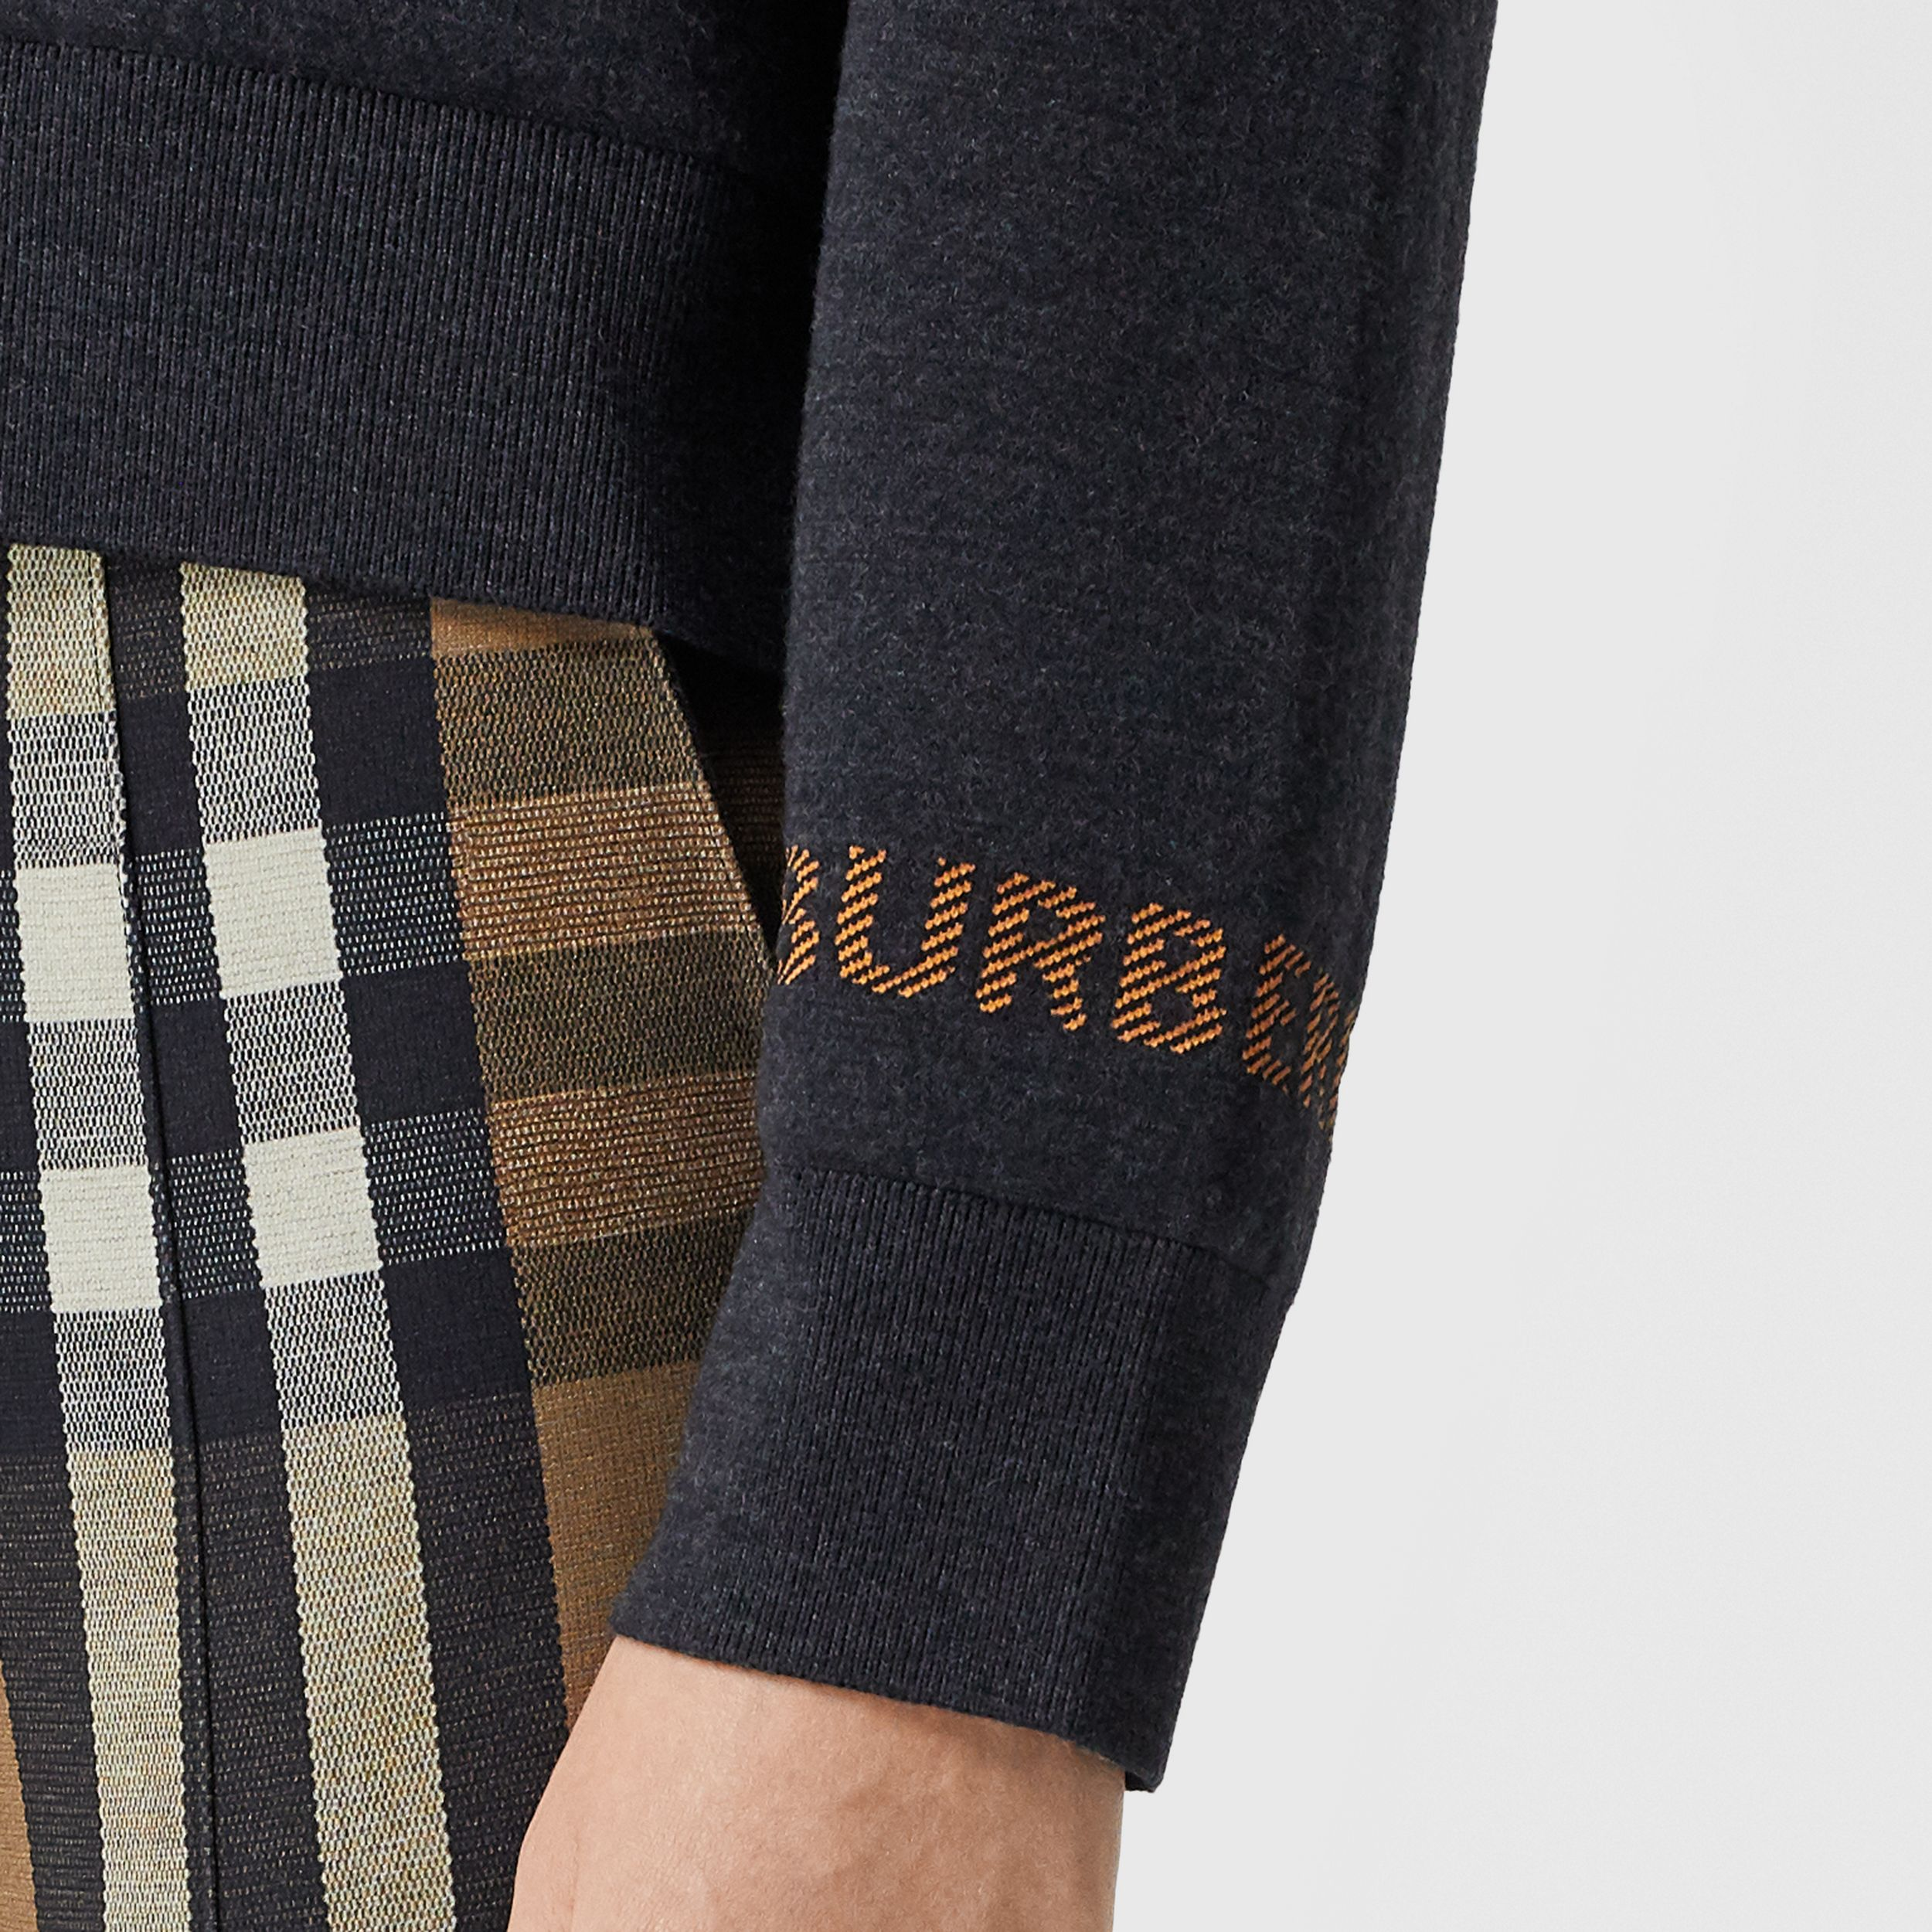 Logo Technical Merino Wool Jacquard Sweater in Charcoal Melange - Women | Burberry - 2